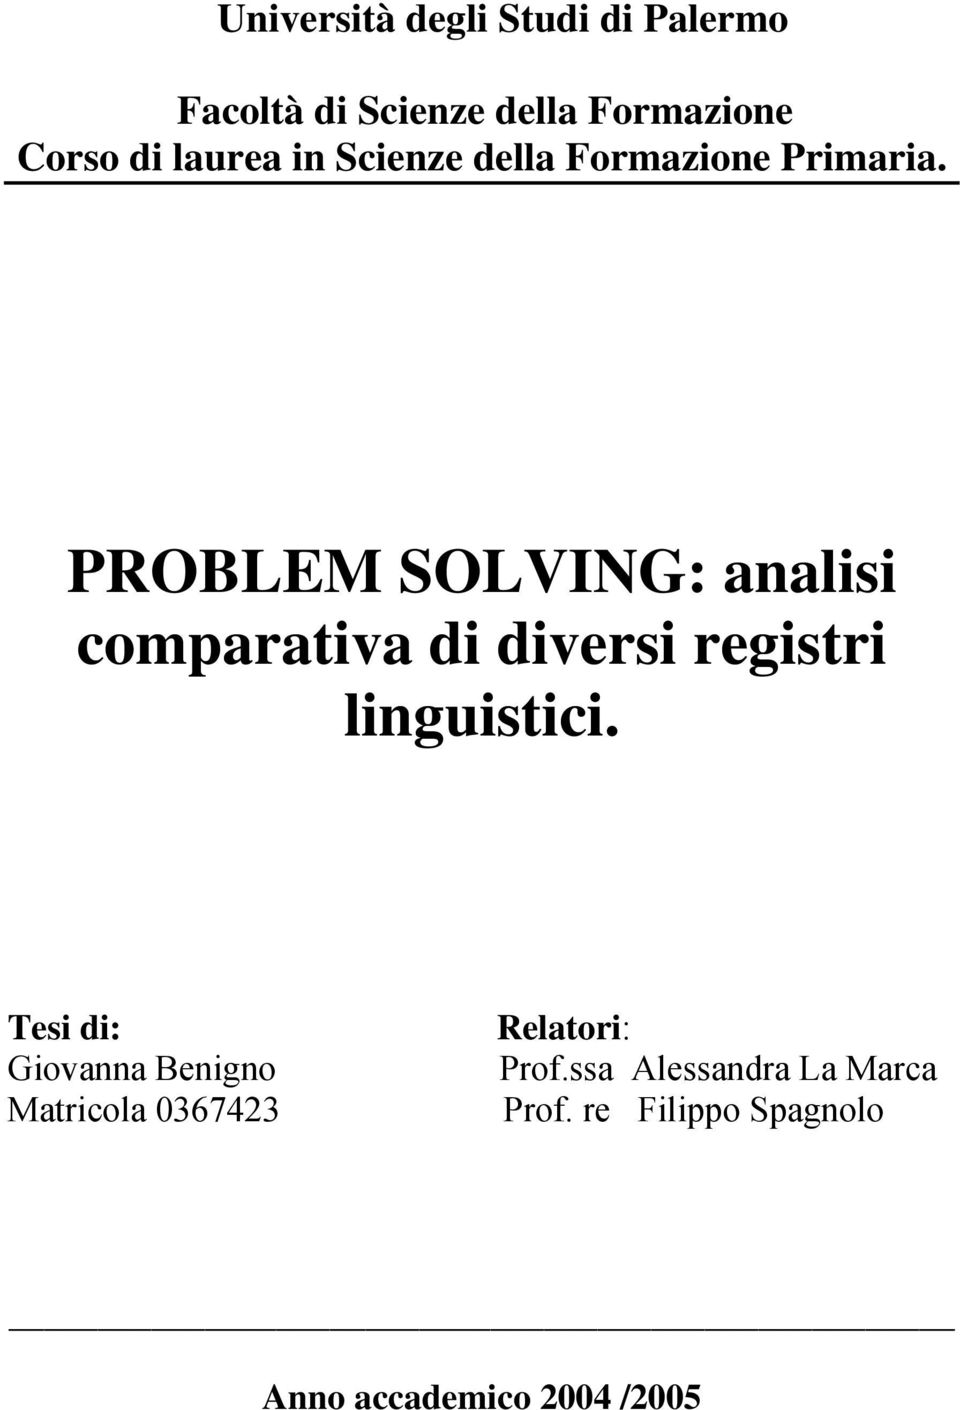 PROBLEM SOLVING: analisi comparativa di diversi registri linguistici.